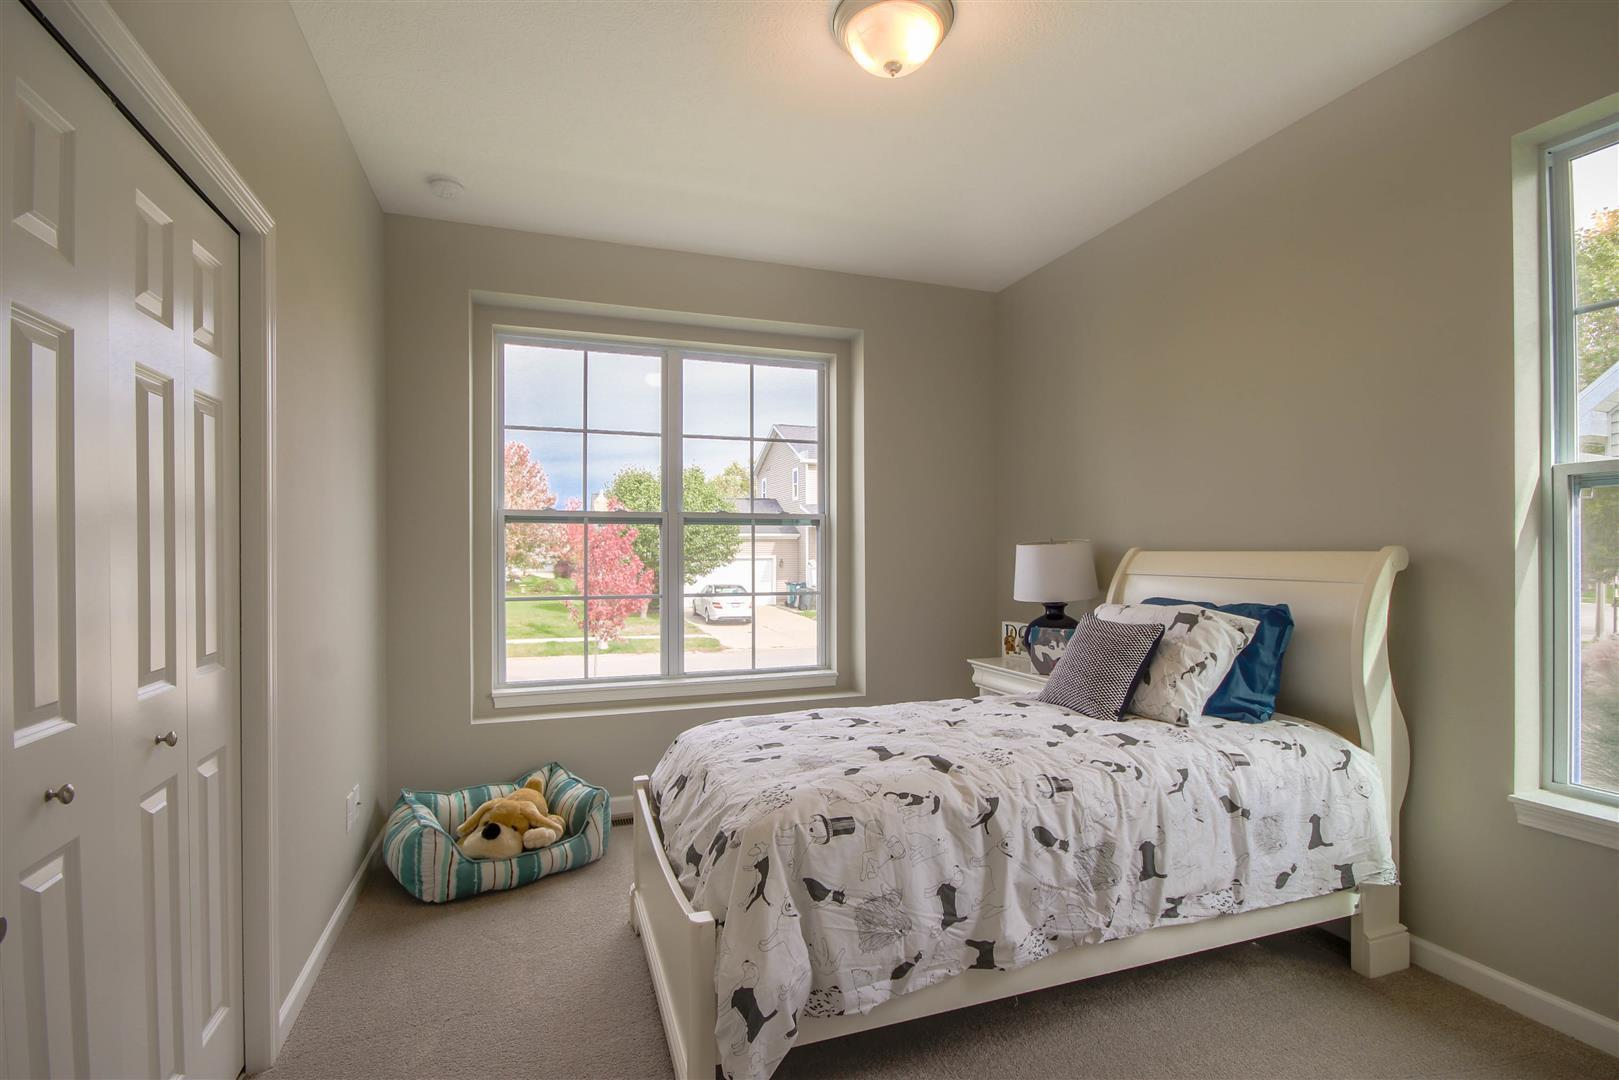 Bedroom featured in the Wharton By Mayberry Homes in Lansing, MI